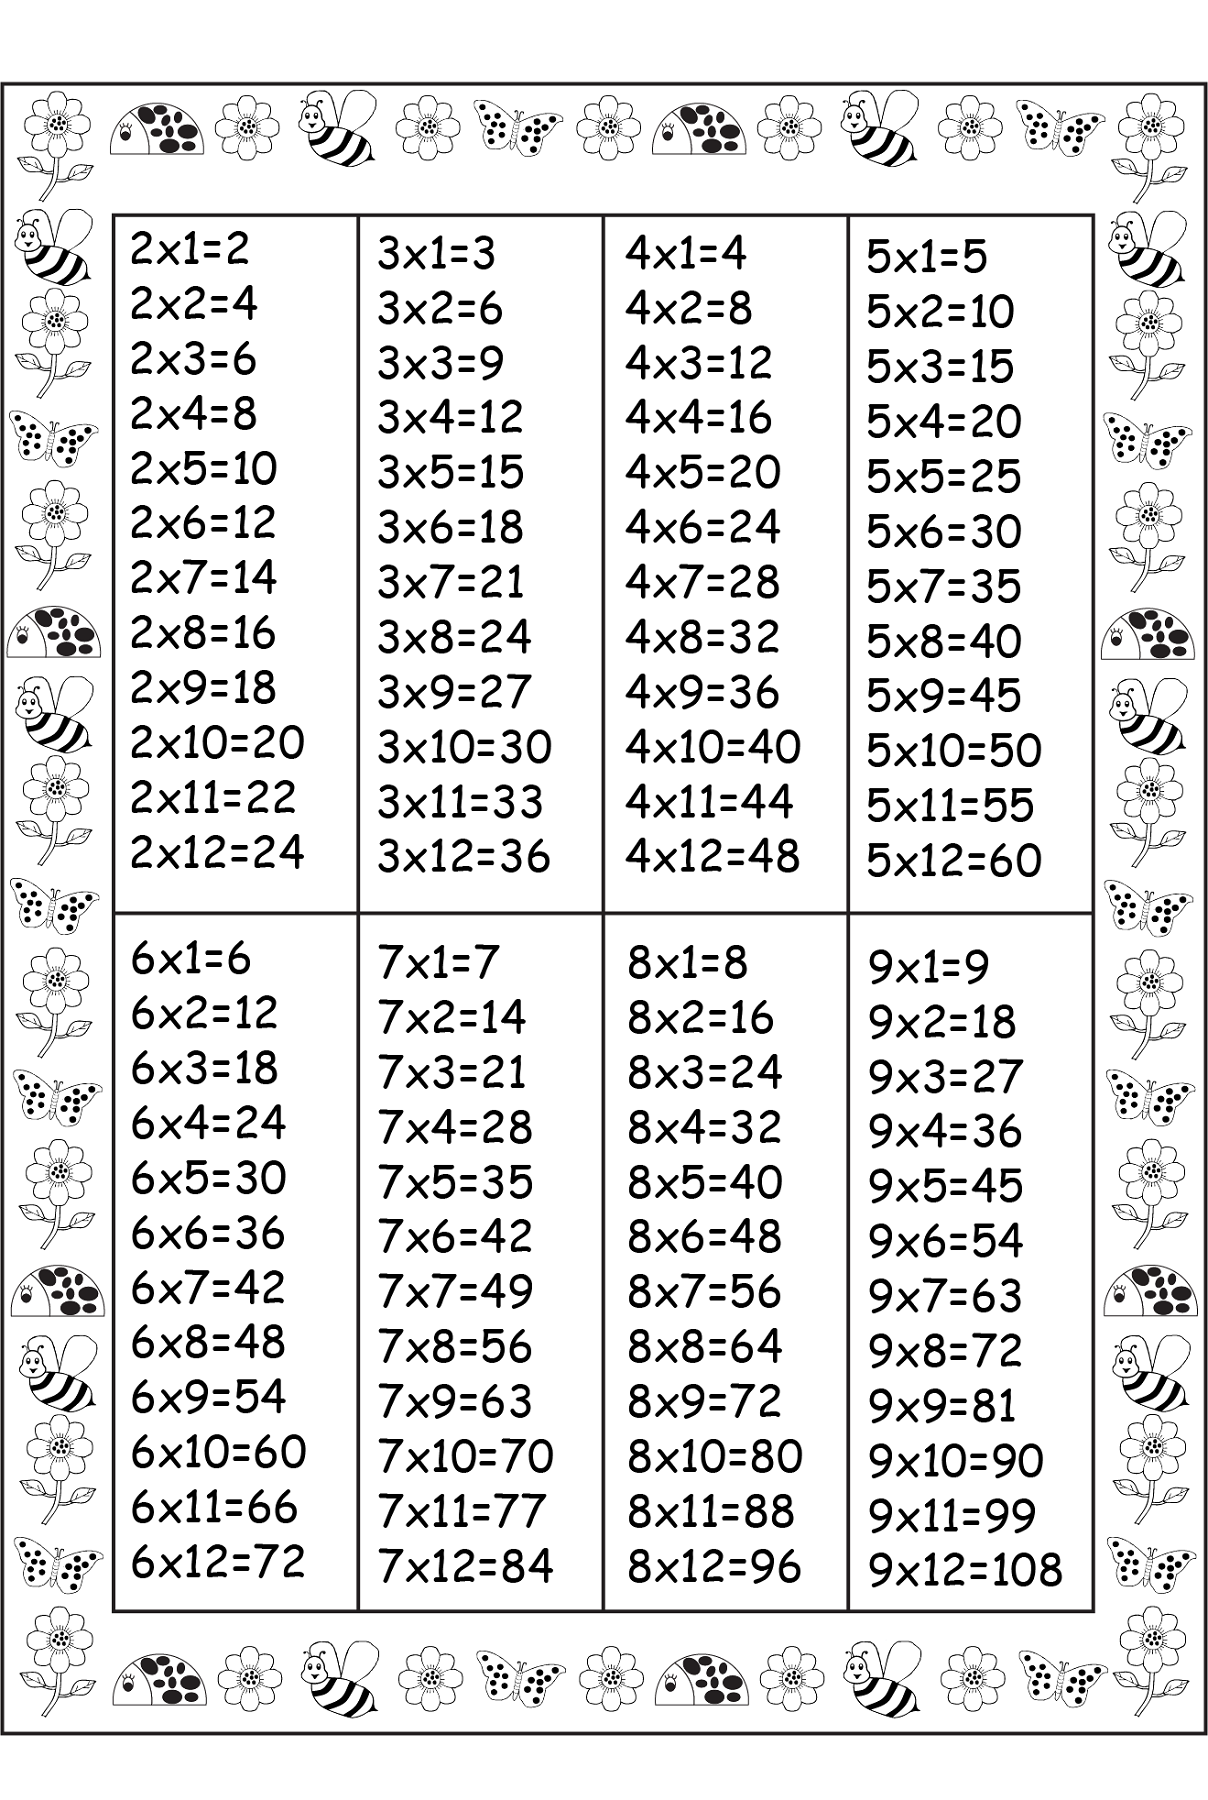 times table sheets printable mutiplication times table charts times table chart math. Black Bedroom Furniture Sets. Home Design Ideas